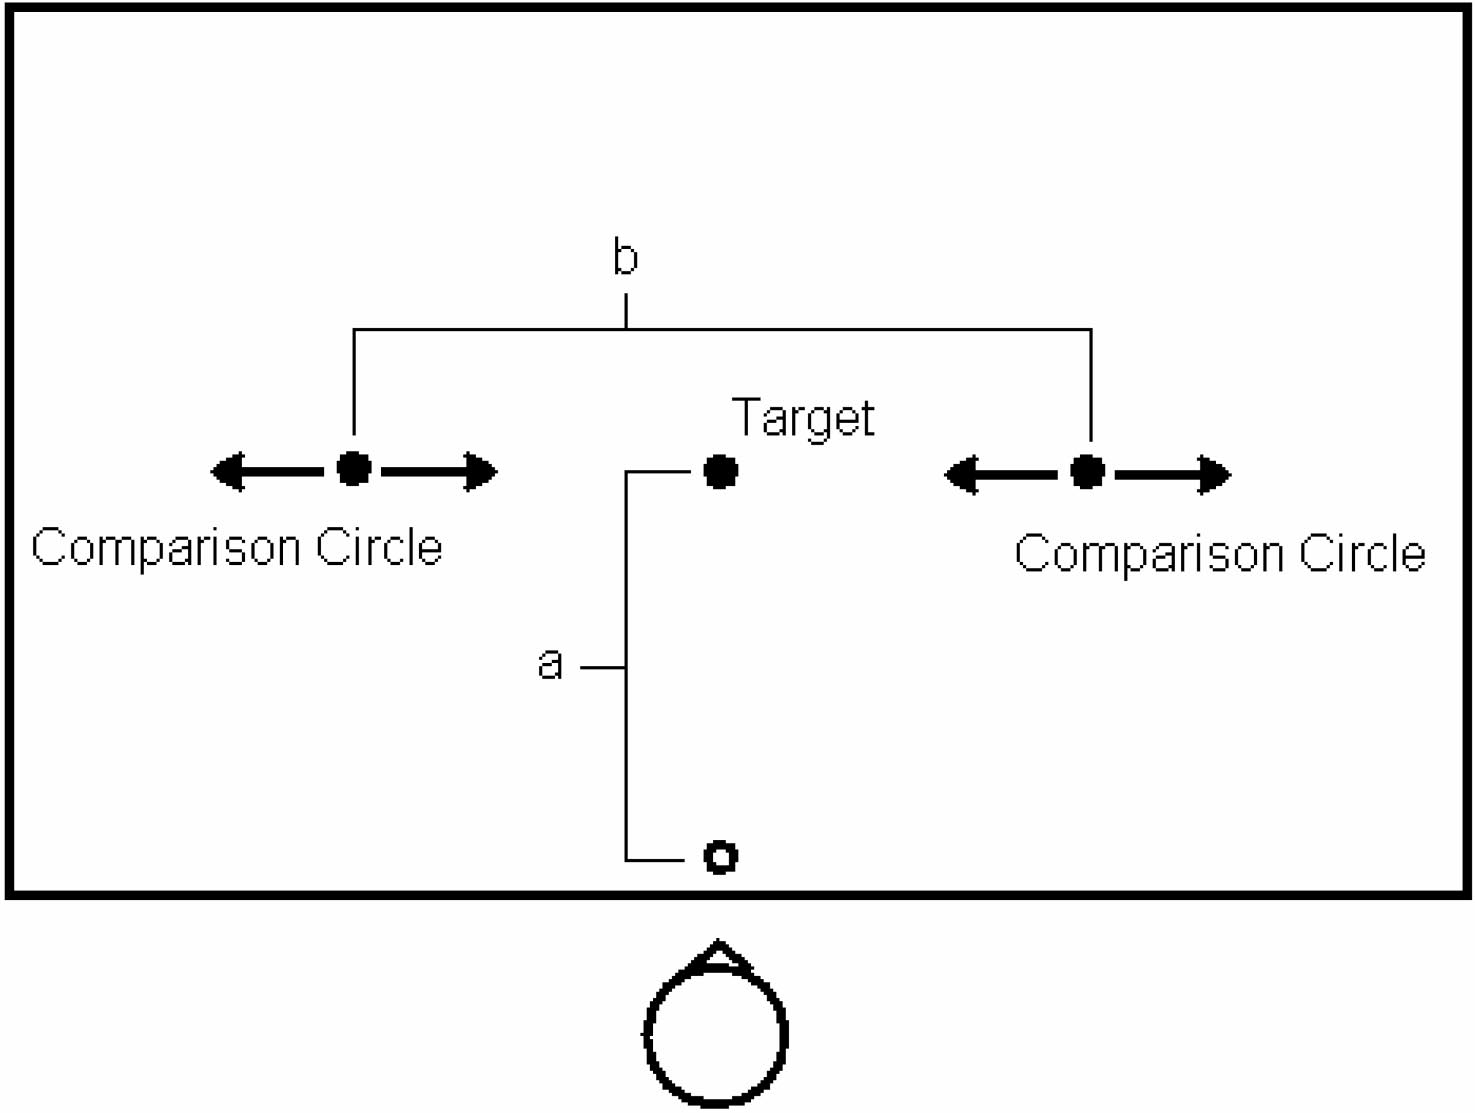 On every trial, participants adjusted the comparison circles closer together or farther apart until the distance between the comparison circles appeared to be the same as the distance to the target